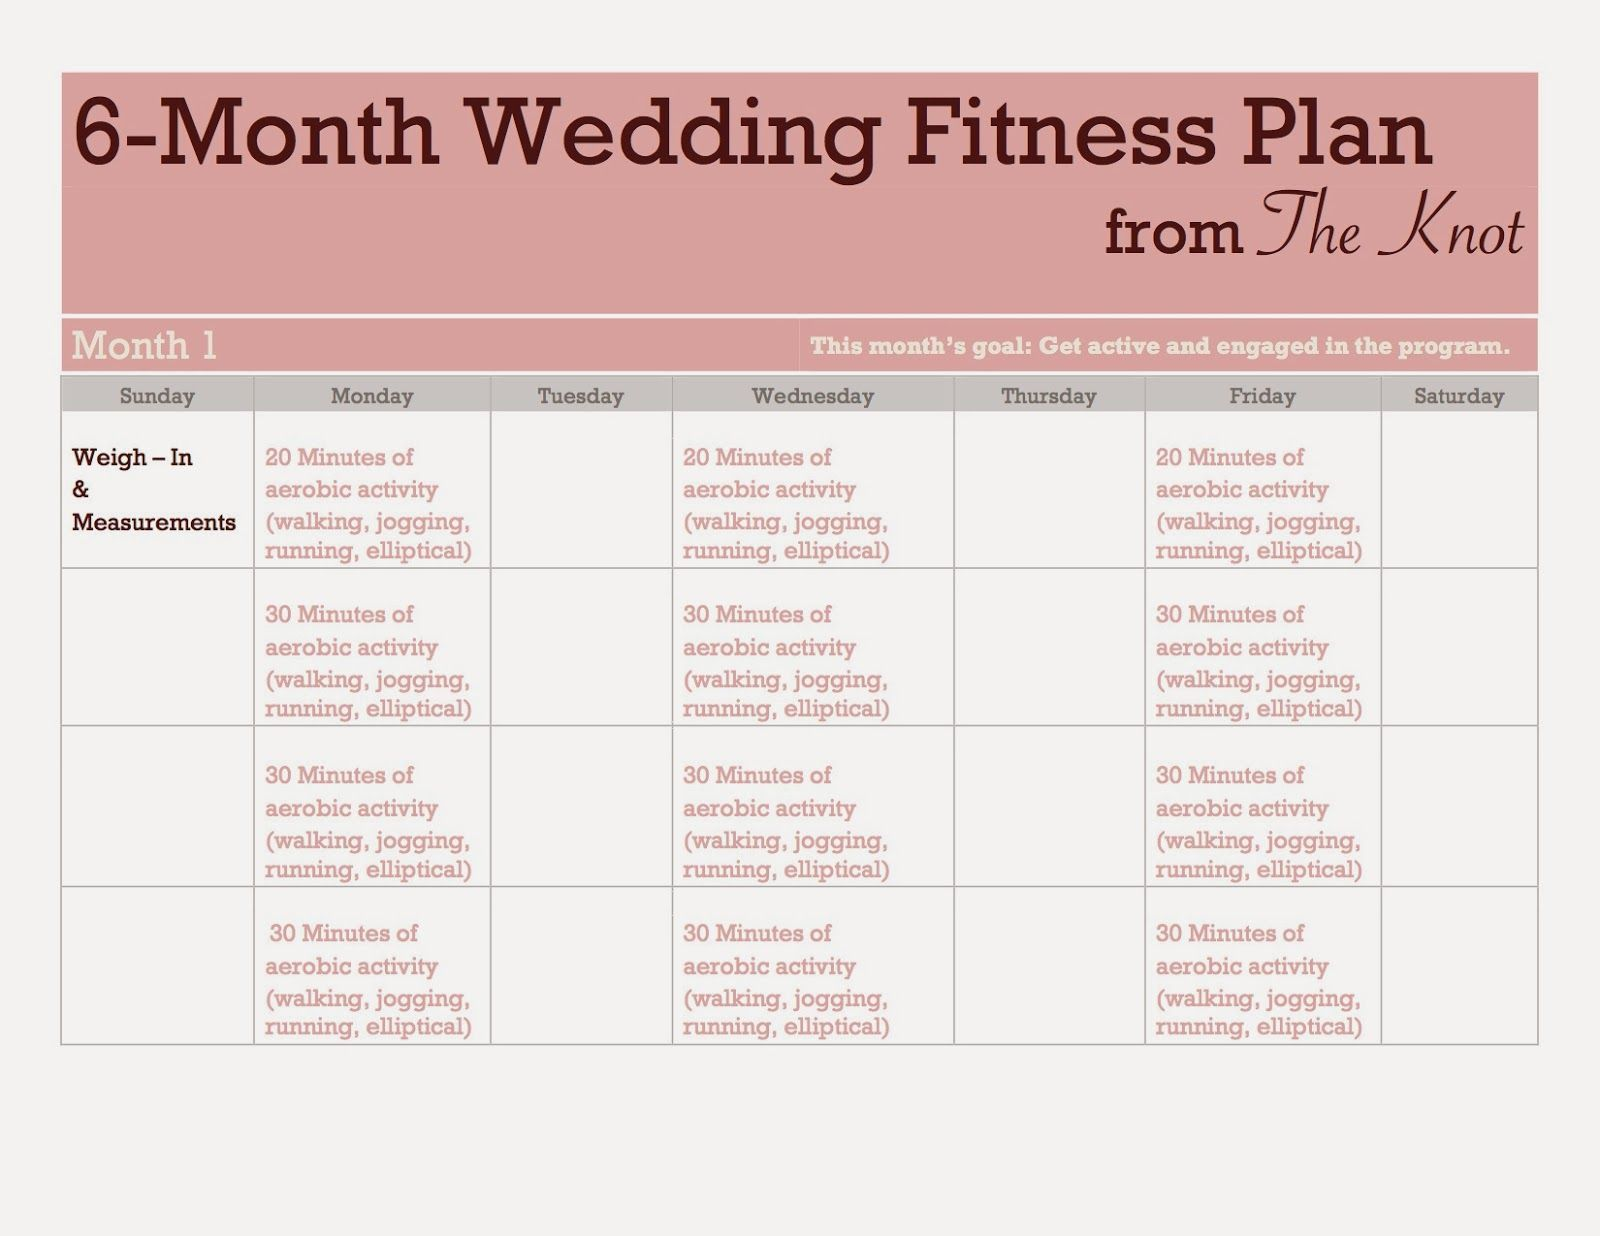 The Knot S 6 Month Wedding Fitness Plan I Made It Into An Easy To Read Calendar For The Blog 6monthweightl In 2020 Wedding Workout Plan Wedding Workout Wedding Diet